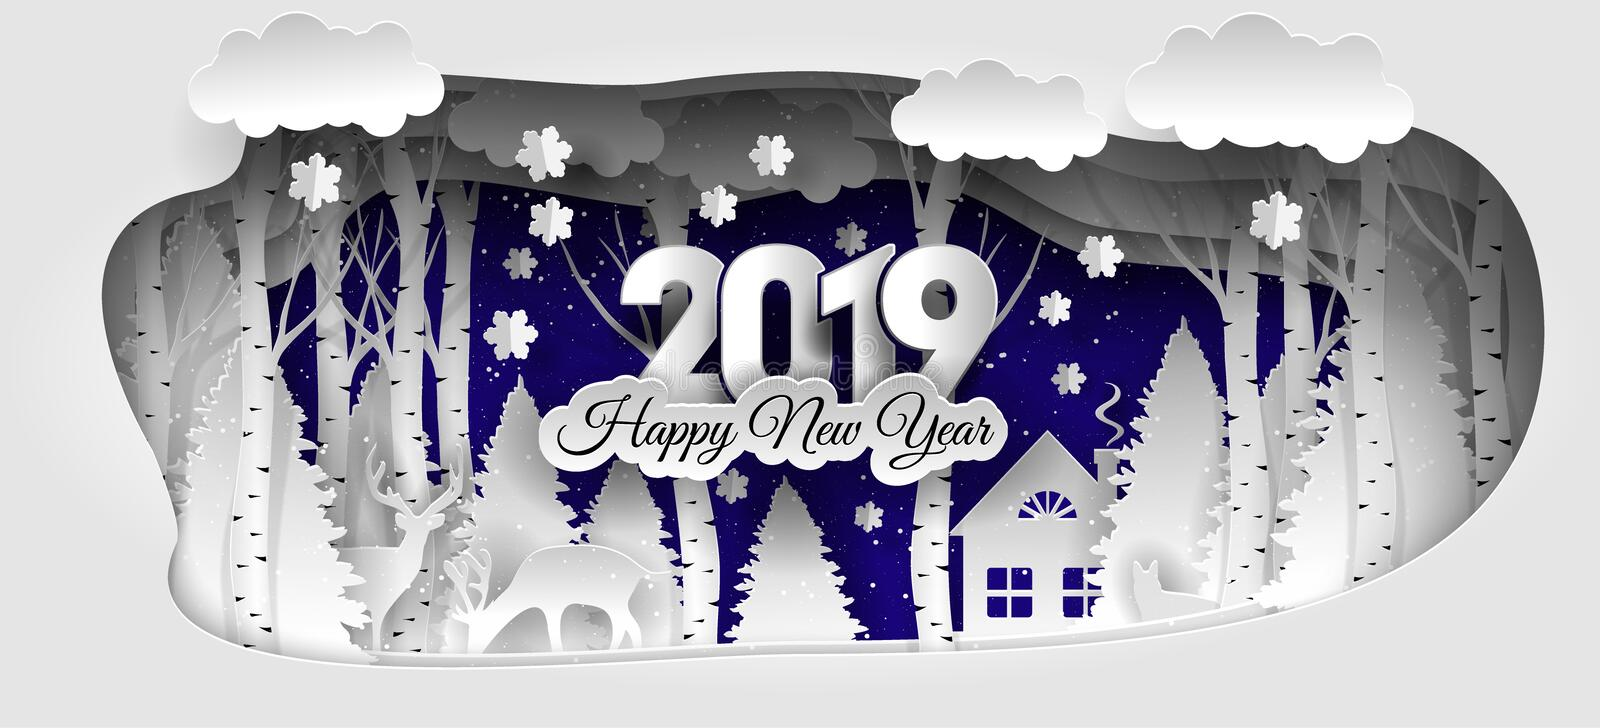 Creative happy new year 2019 design. Winter forest. Happy new year 2019. Paper art and craft style stock illustration